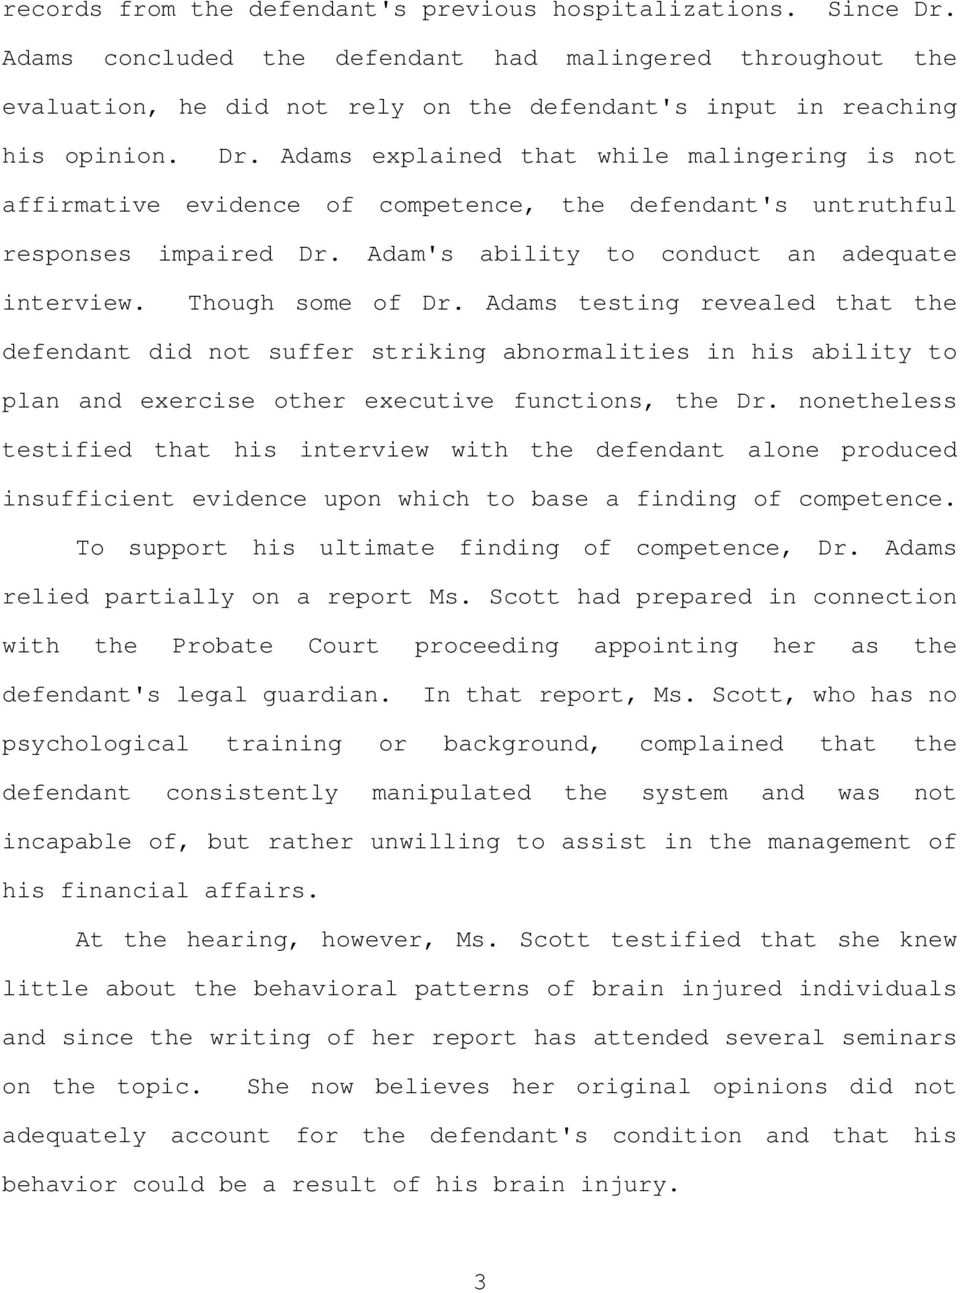 Adams explained that while malingering is not affirmative evidence of competence, the defendant's untruthful responses impaired Dr. Adam's ability to conduct an adequate interview. Though some of Dr.